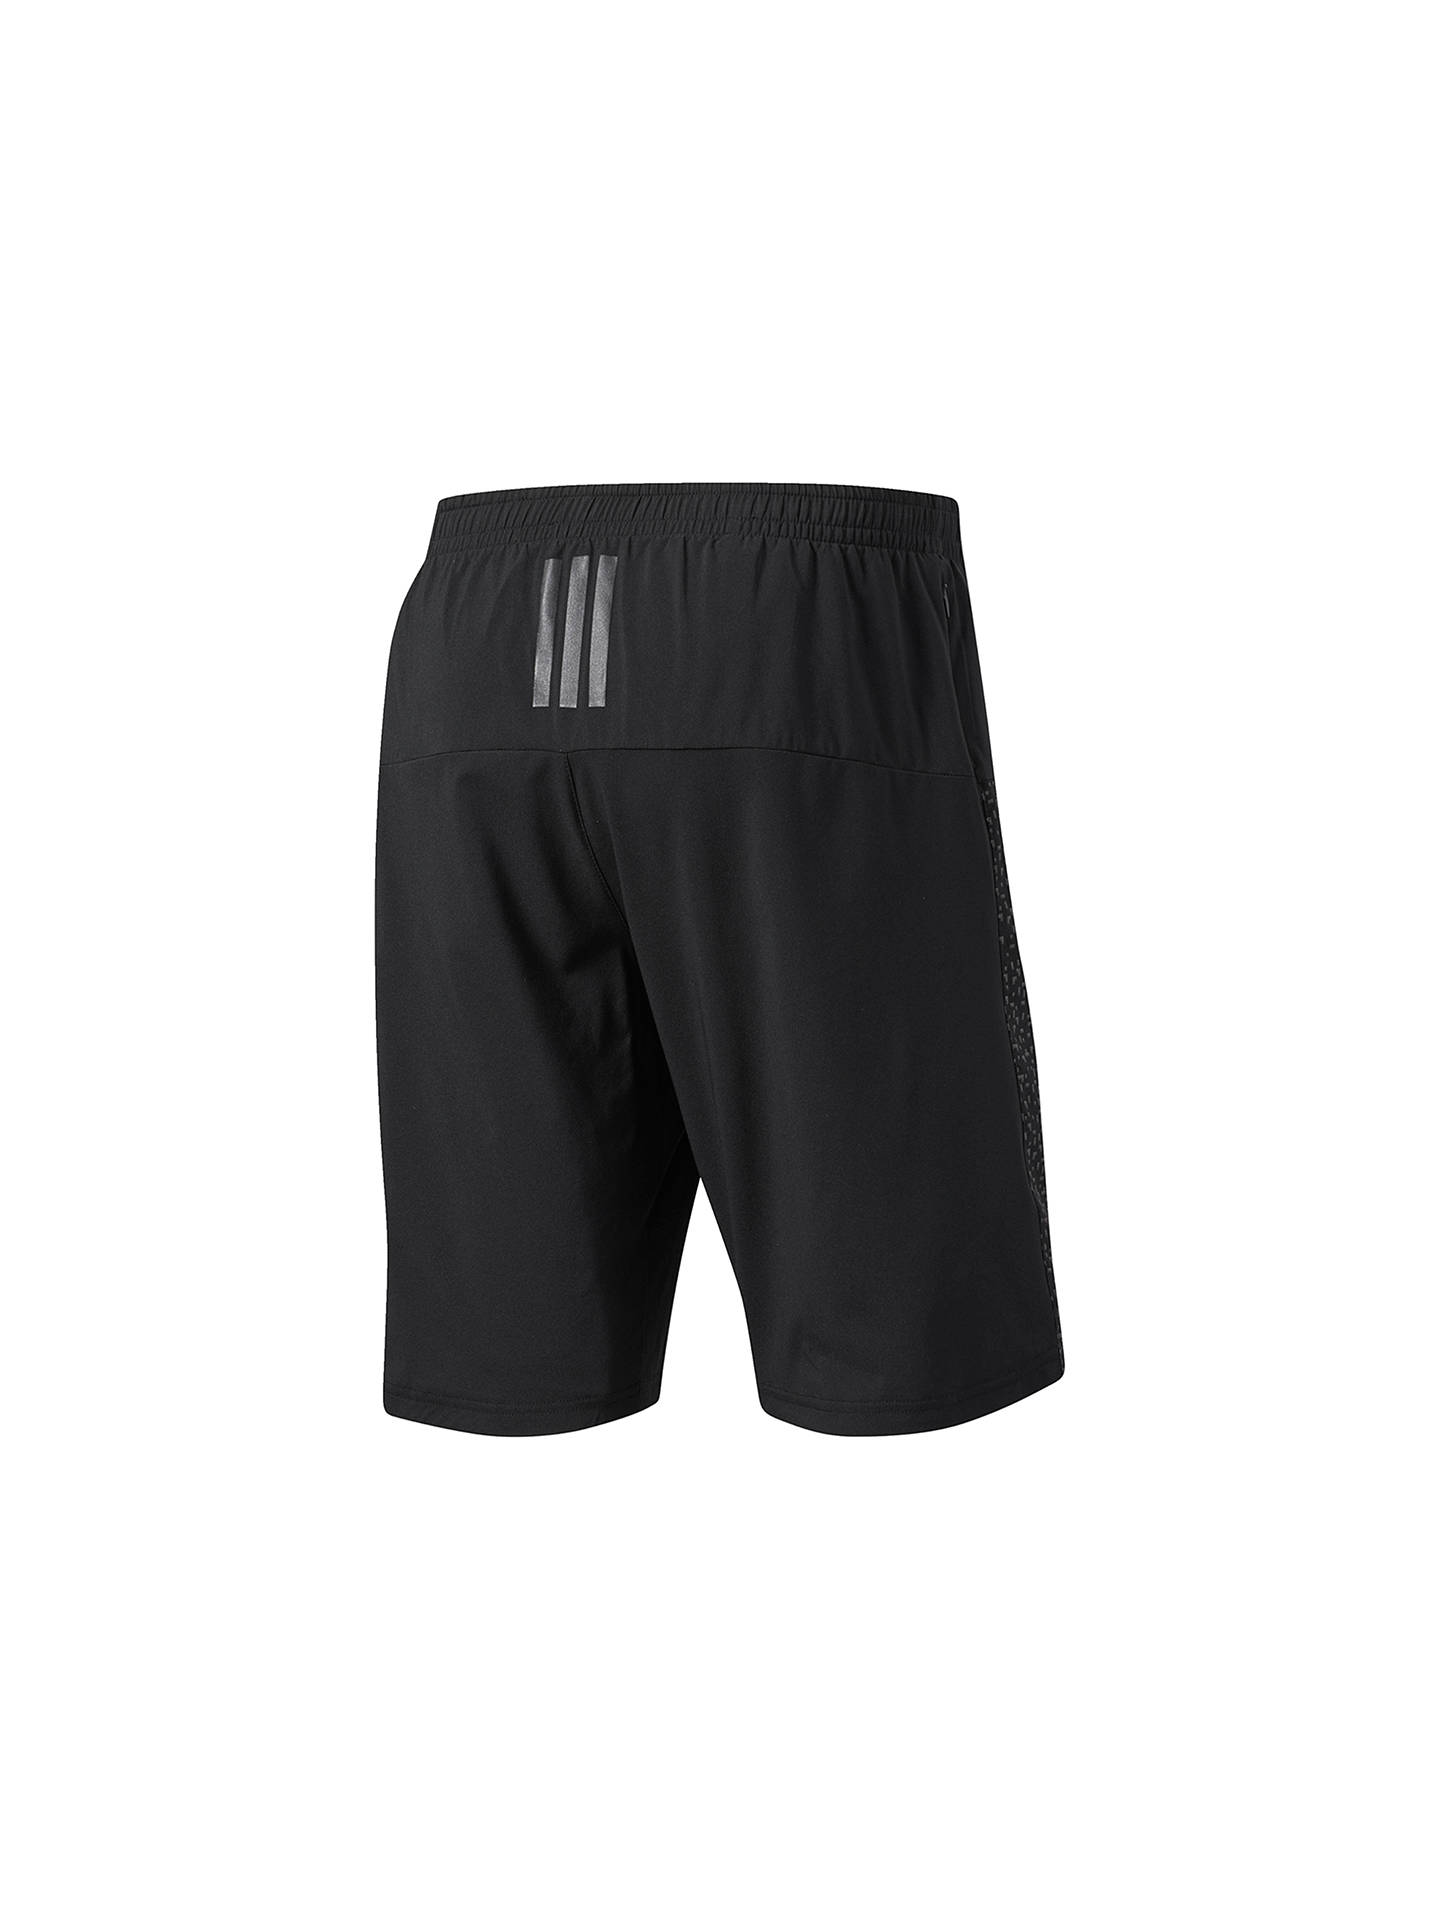 Buyadidas Supernova Dual Running Shorts, Black, S Online at johnlewis.com